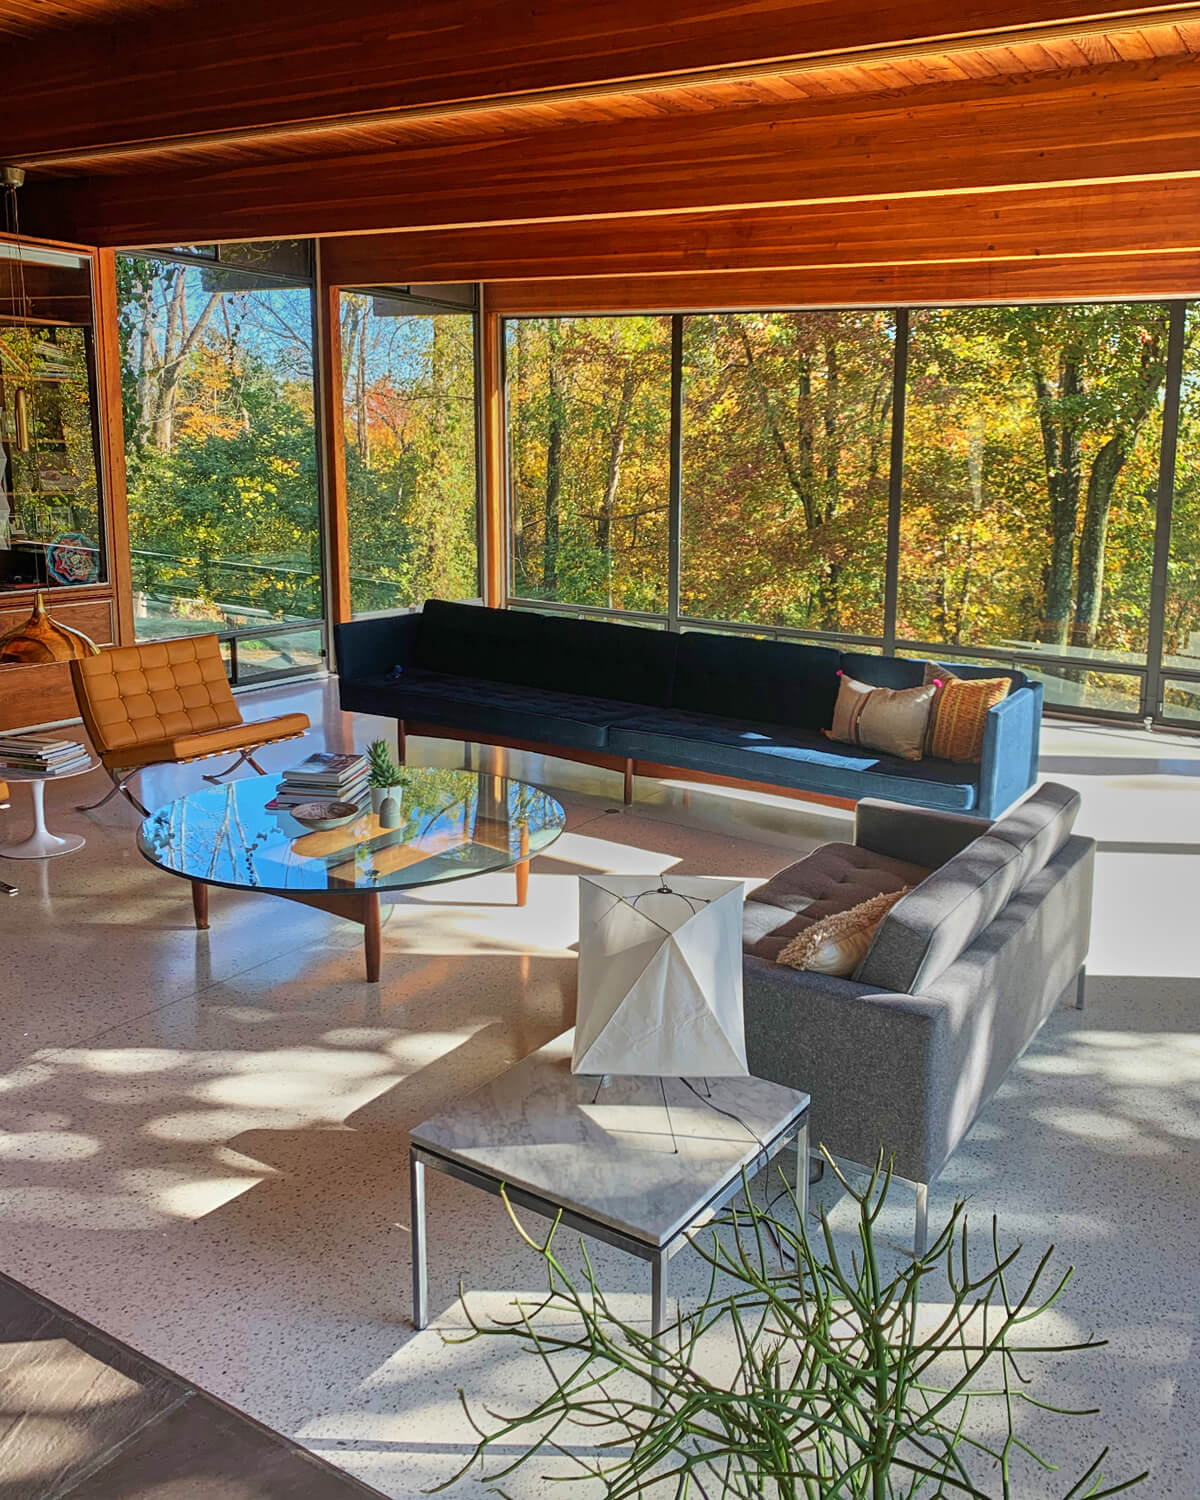 Gerald Luss House, Ossining, New York | holiday homes, holiday rentals